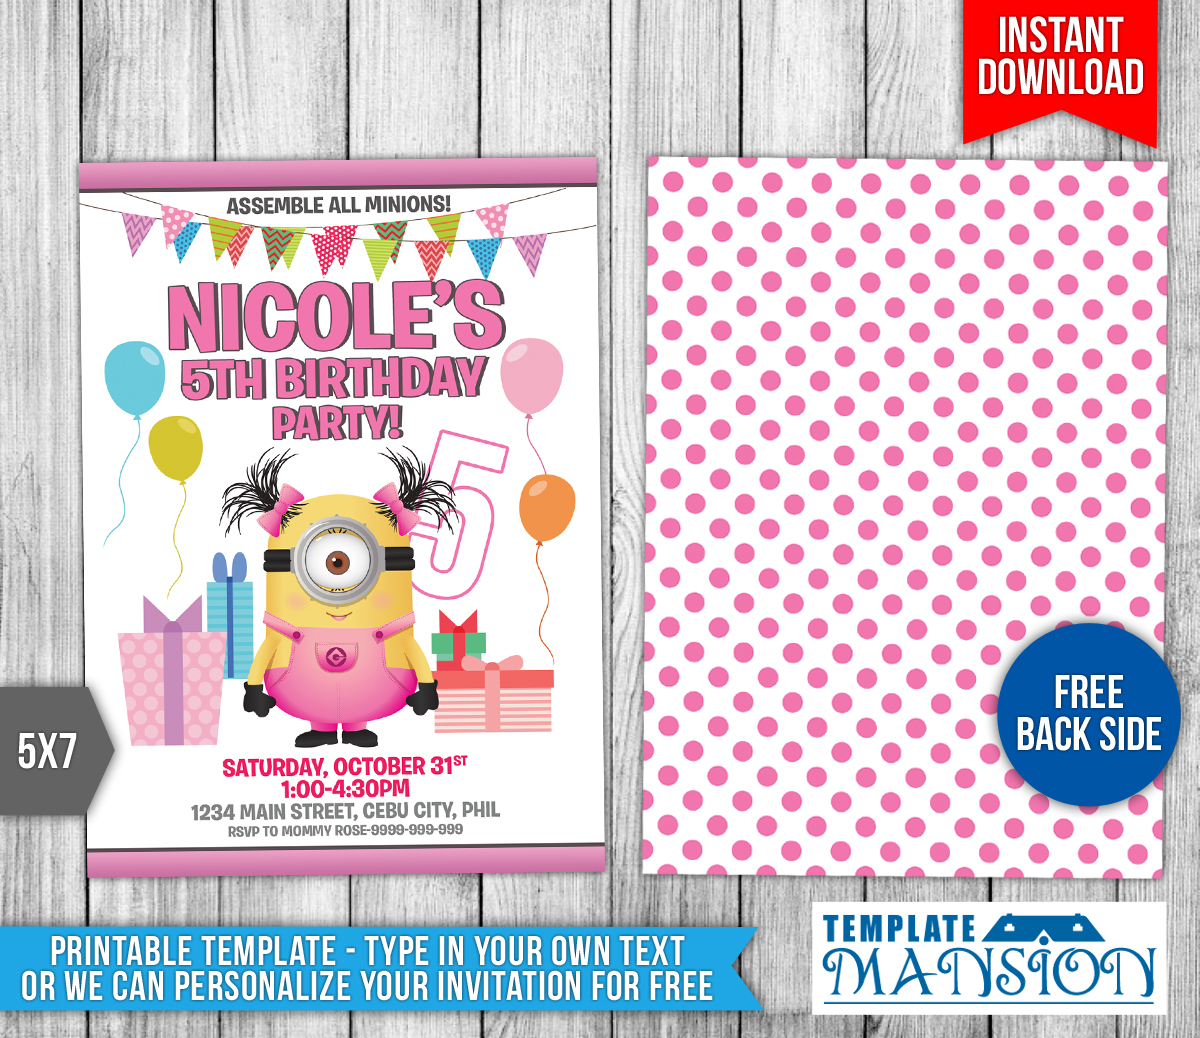 Girl Minion Birthday Invitation Template #9 by templatemansion on ...